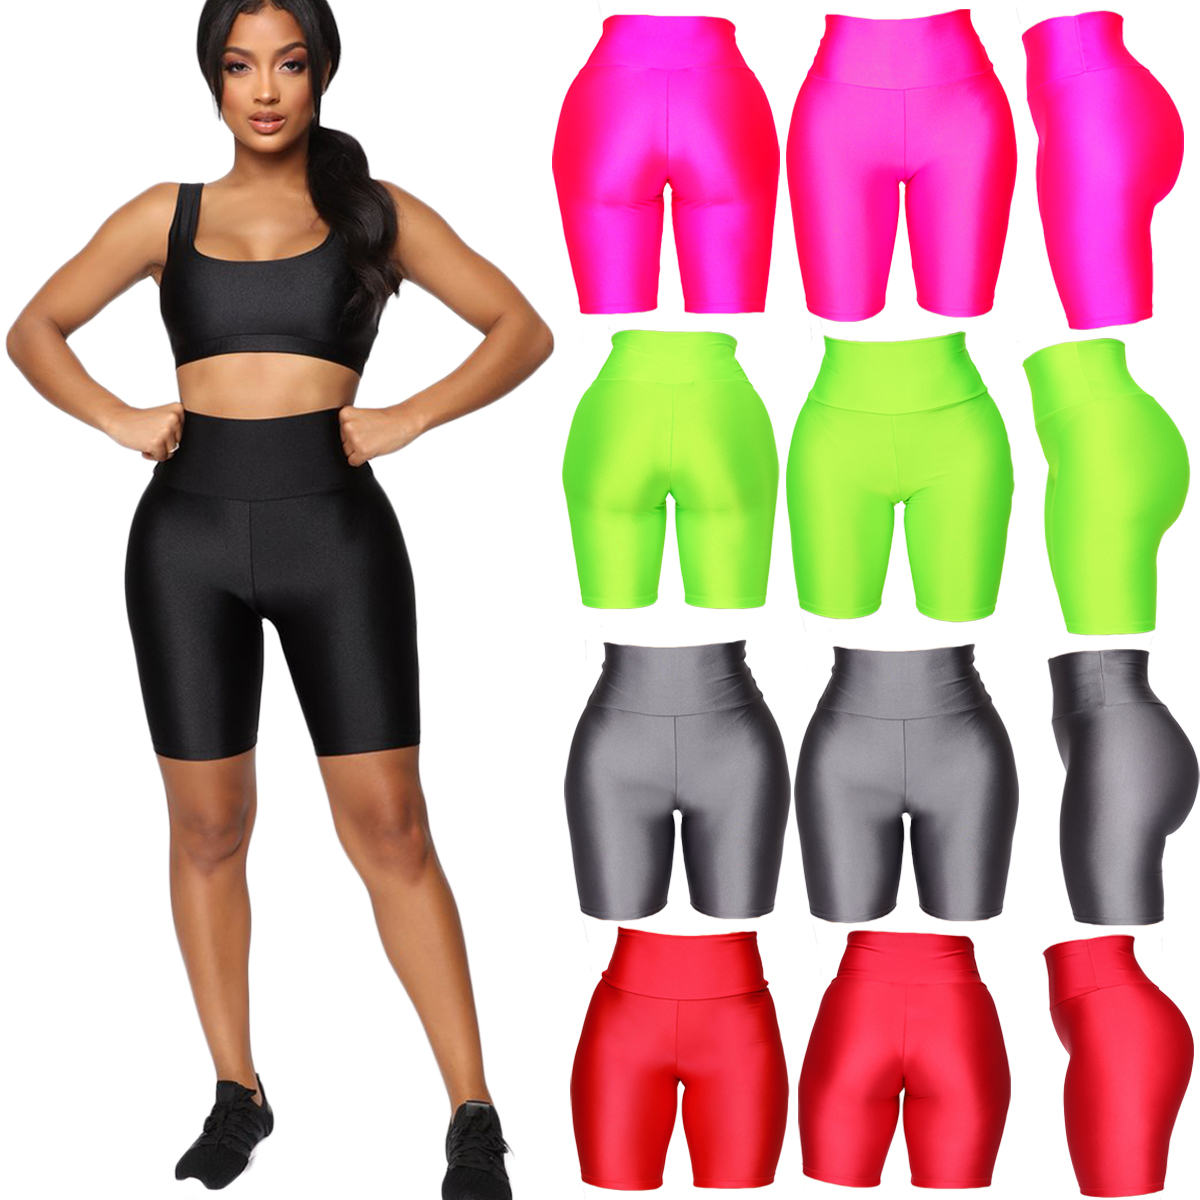 He919923fb826415f9e7ffac4957921e3G - Womens Plain Sports Gym Cycling Skinny Fit High Waist Shorts Lady Summer Casual Solid Basic Stretchy Bodycon Short Pants